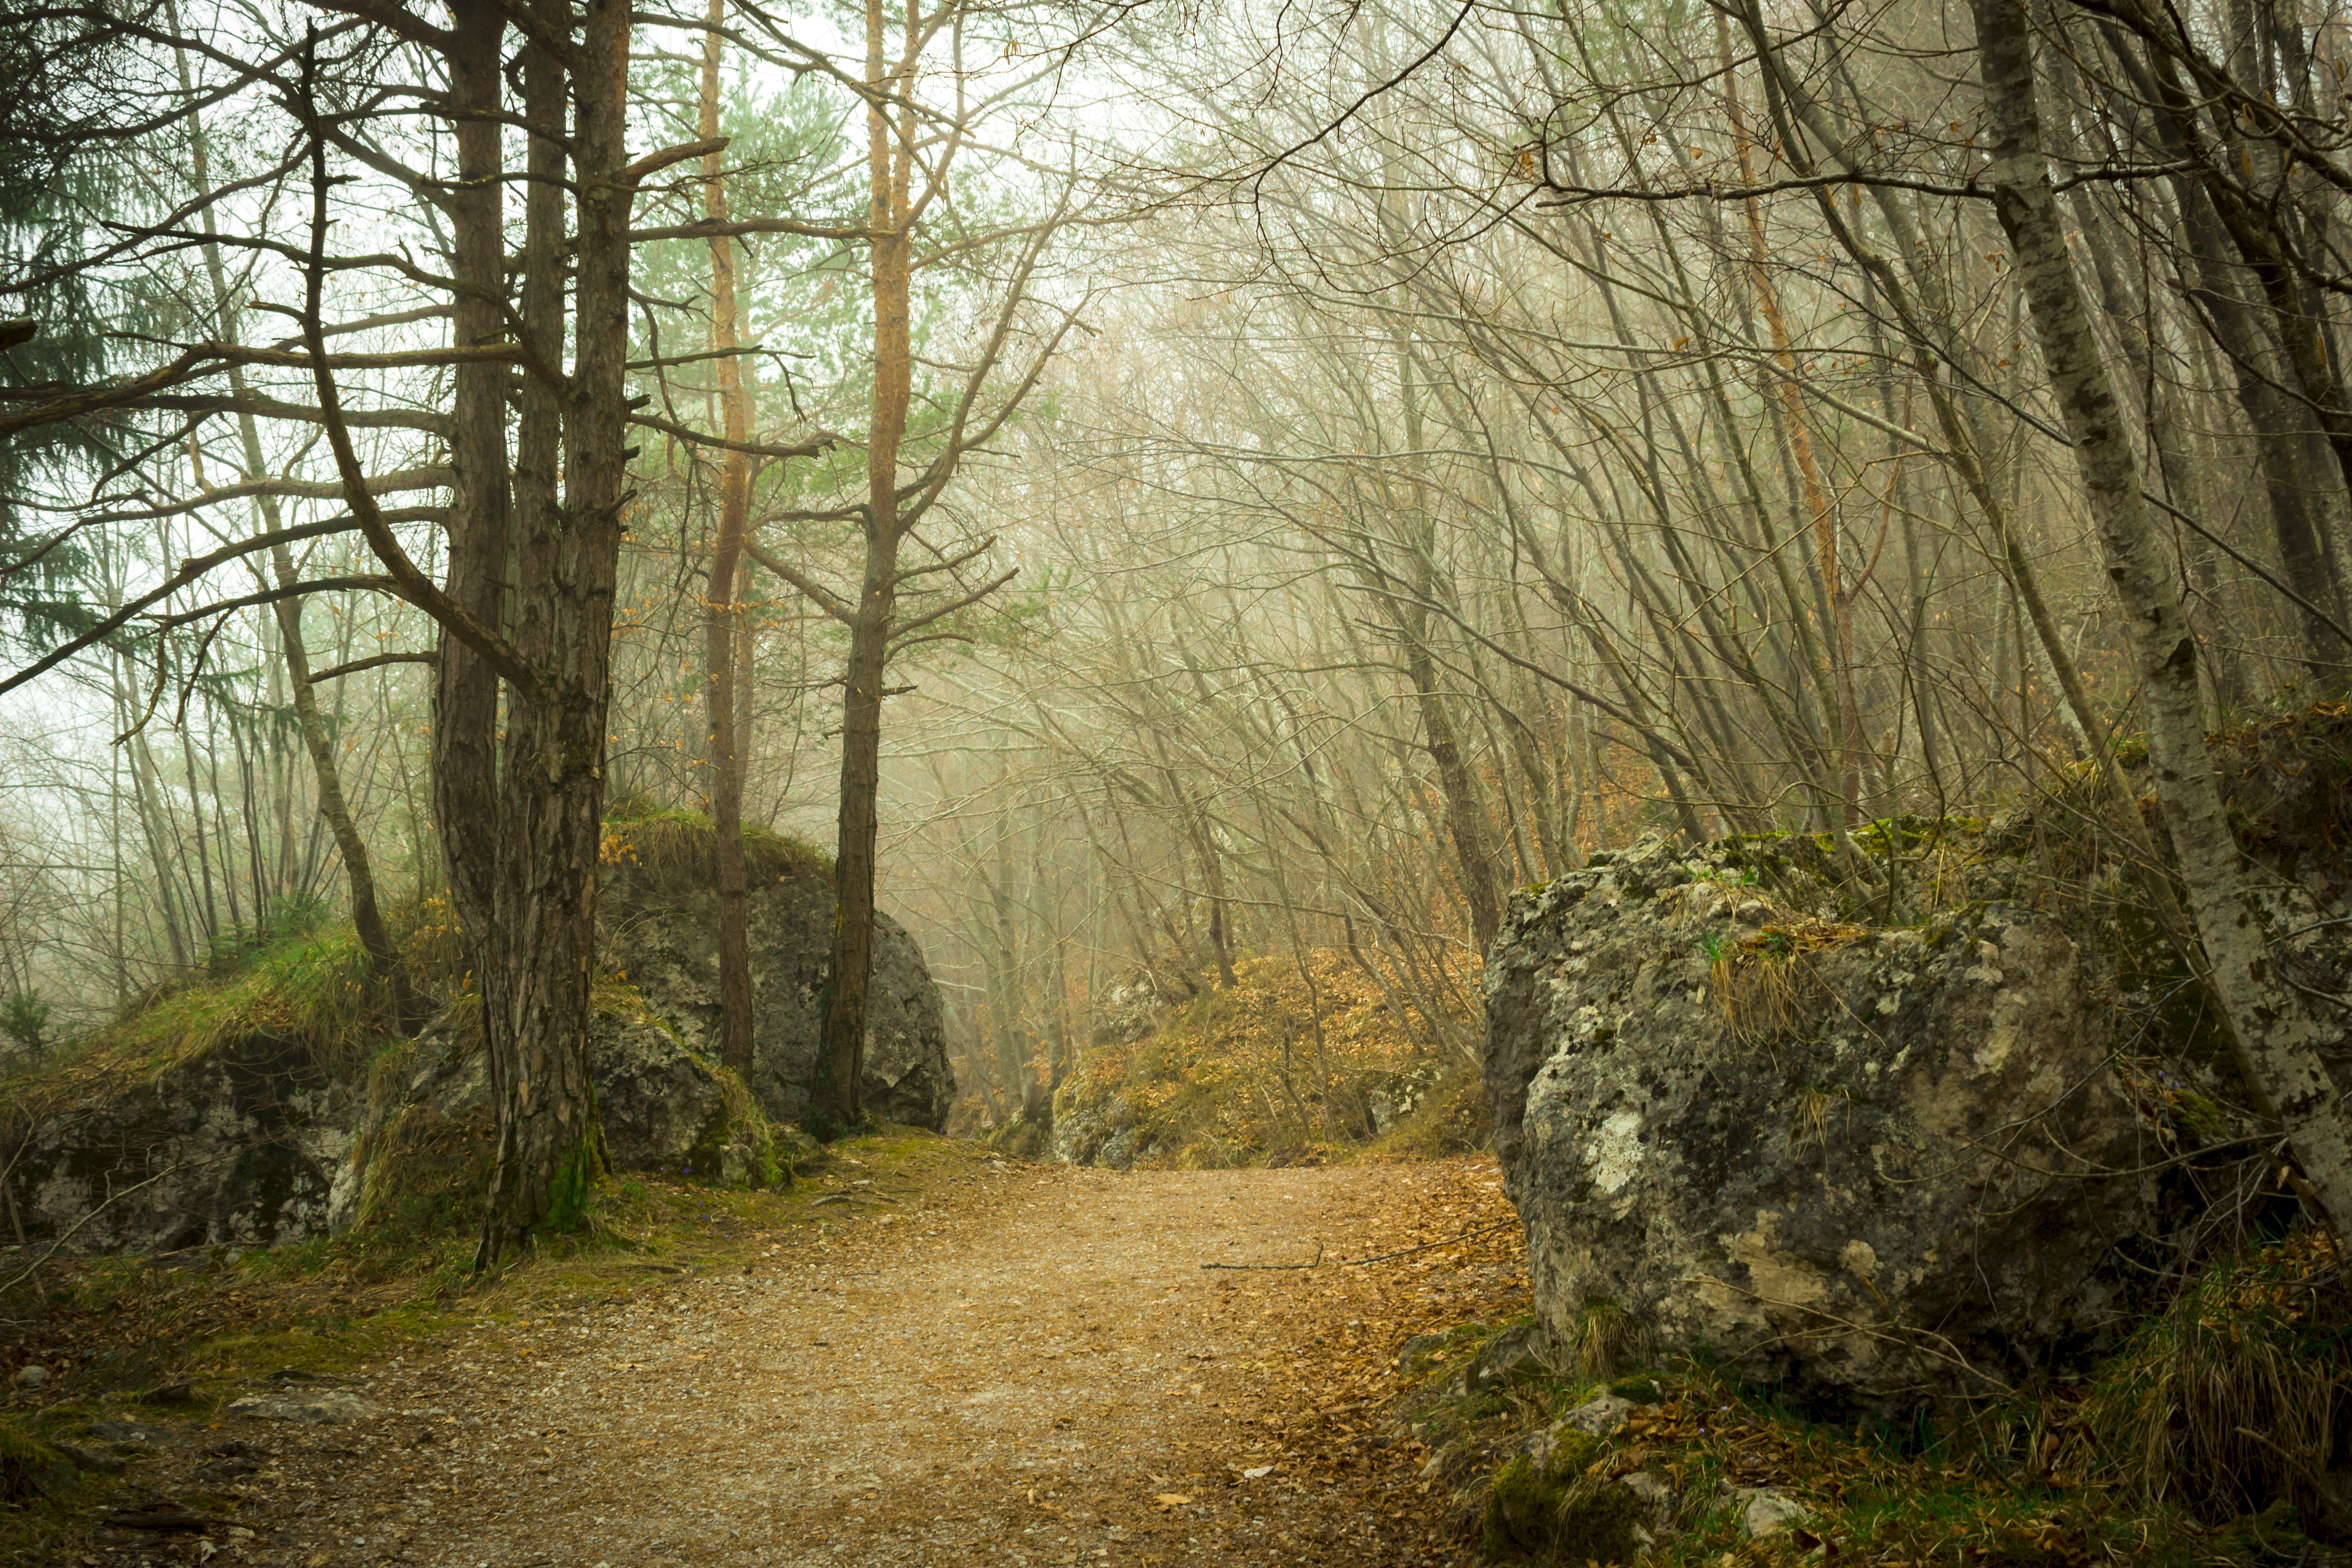 Fall Path Wallpaper Forest During Daytime 183 Free Stock Photo